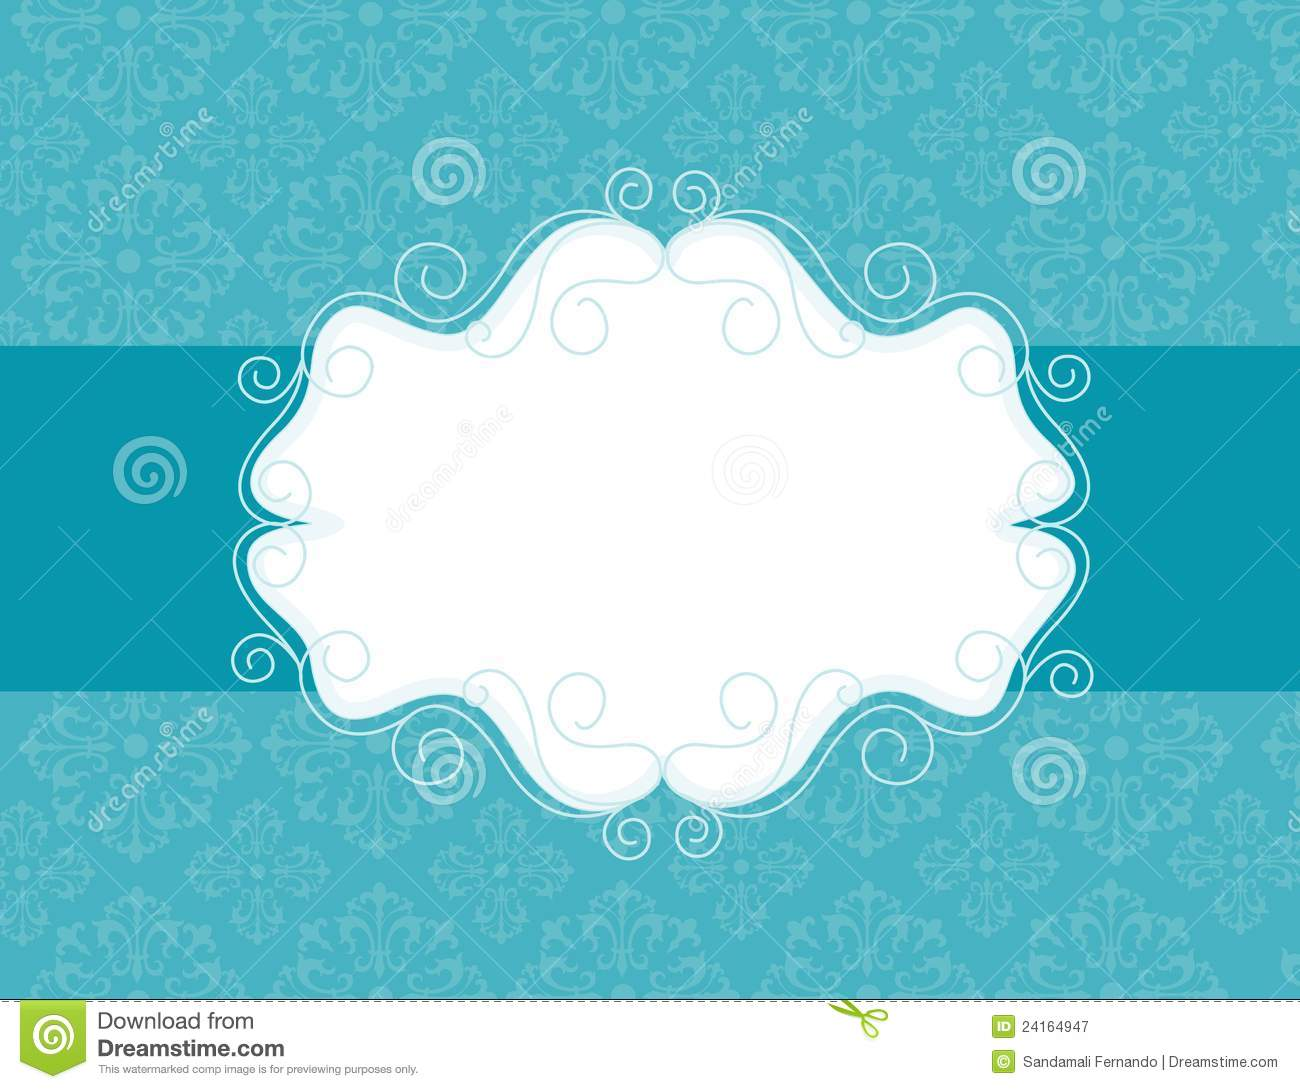 free invitation backgrounds koni polycode co